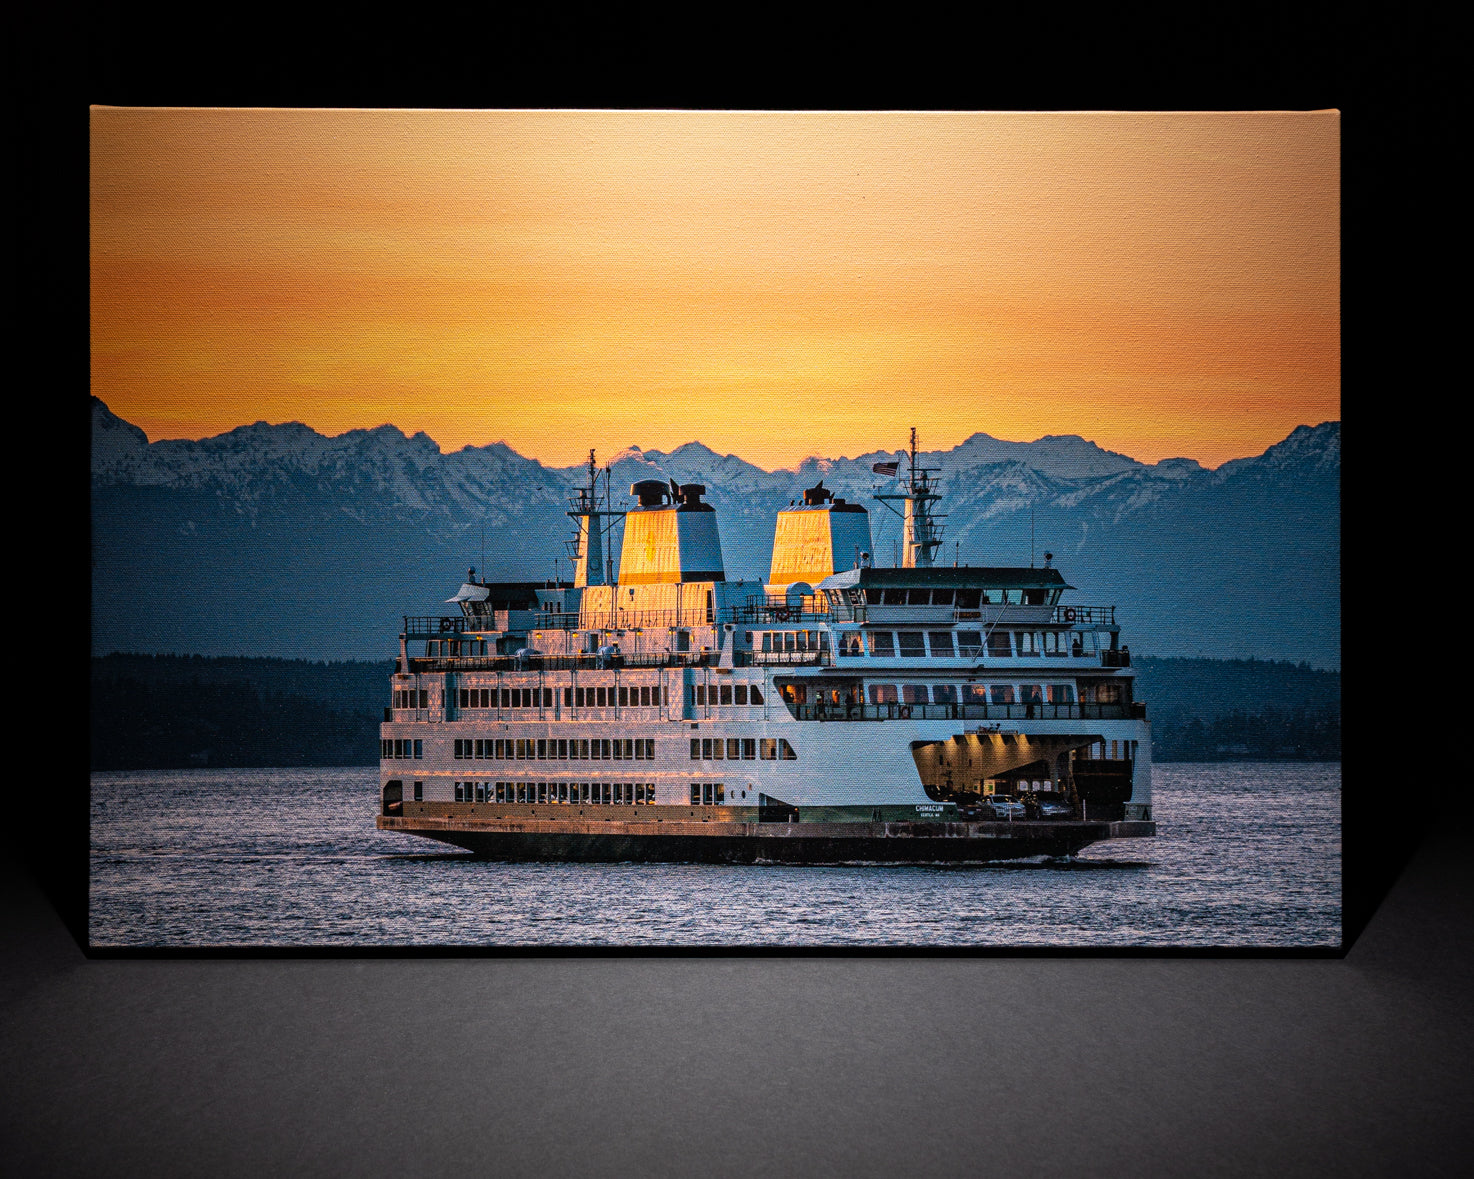 Seattle Ferry at Sunset